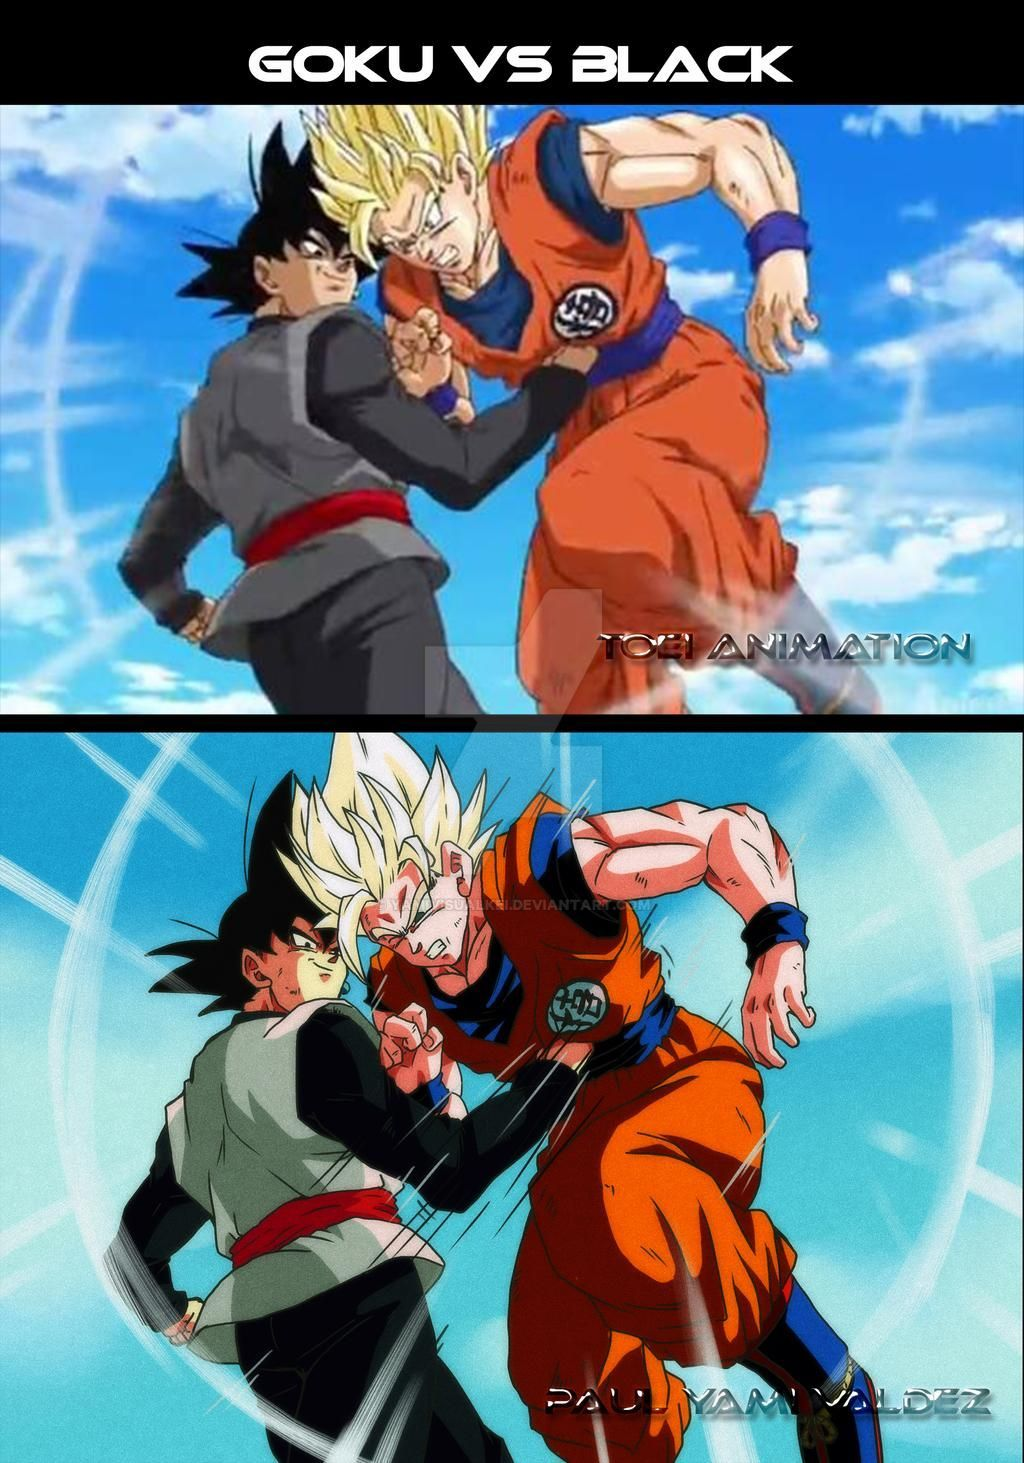 Goku Vs Black By Yamivisualkei On Deviantart Anime Dragon Ball Super Goku Vs Dragon Ball Art